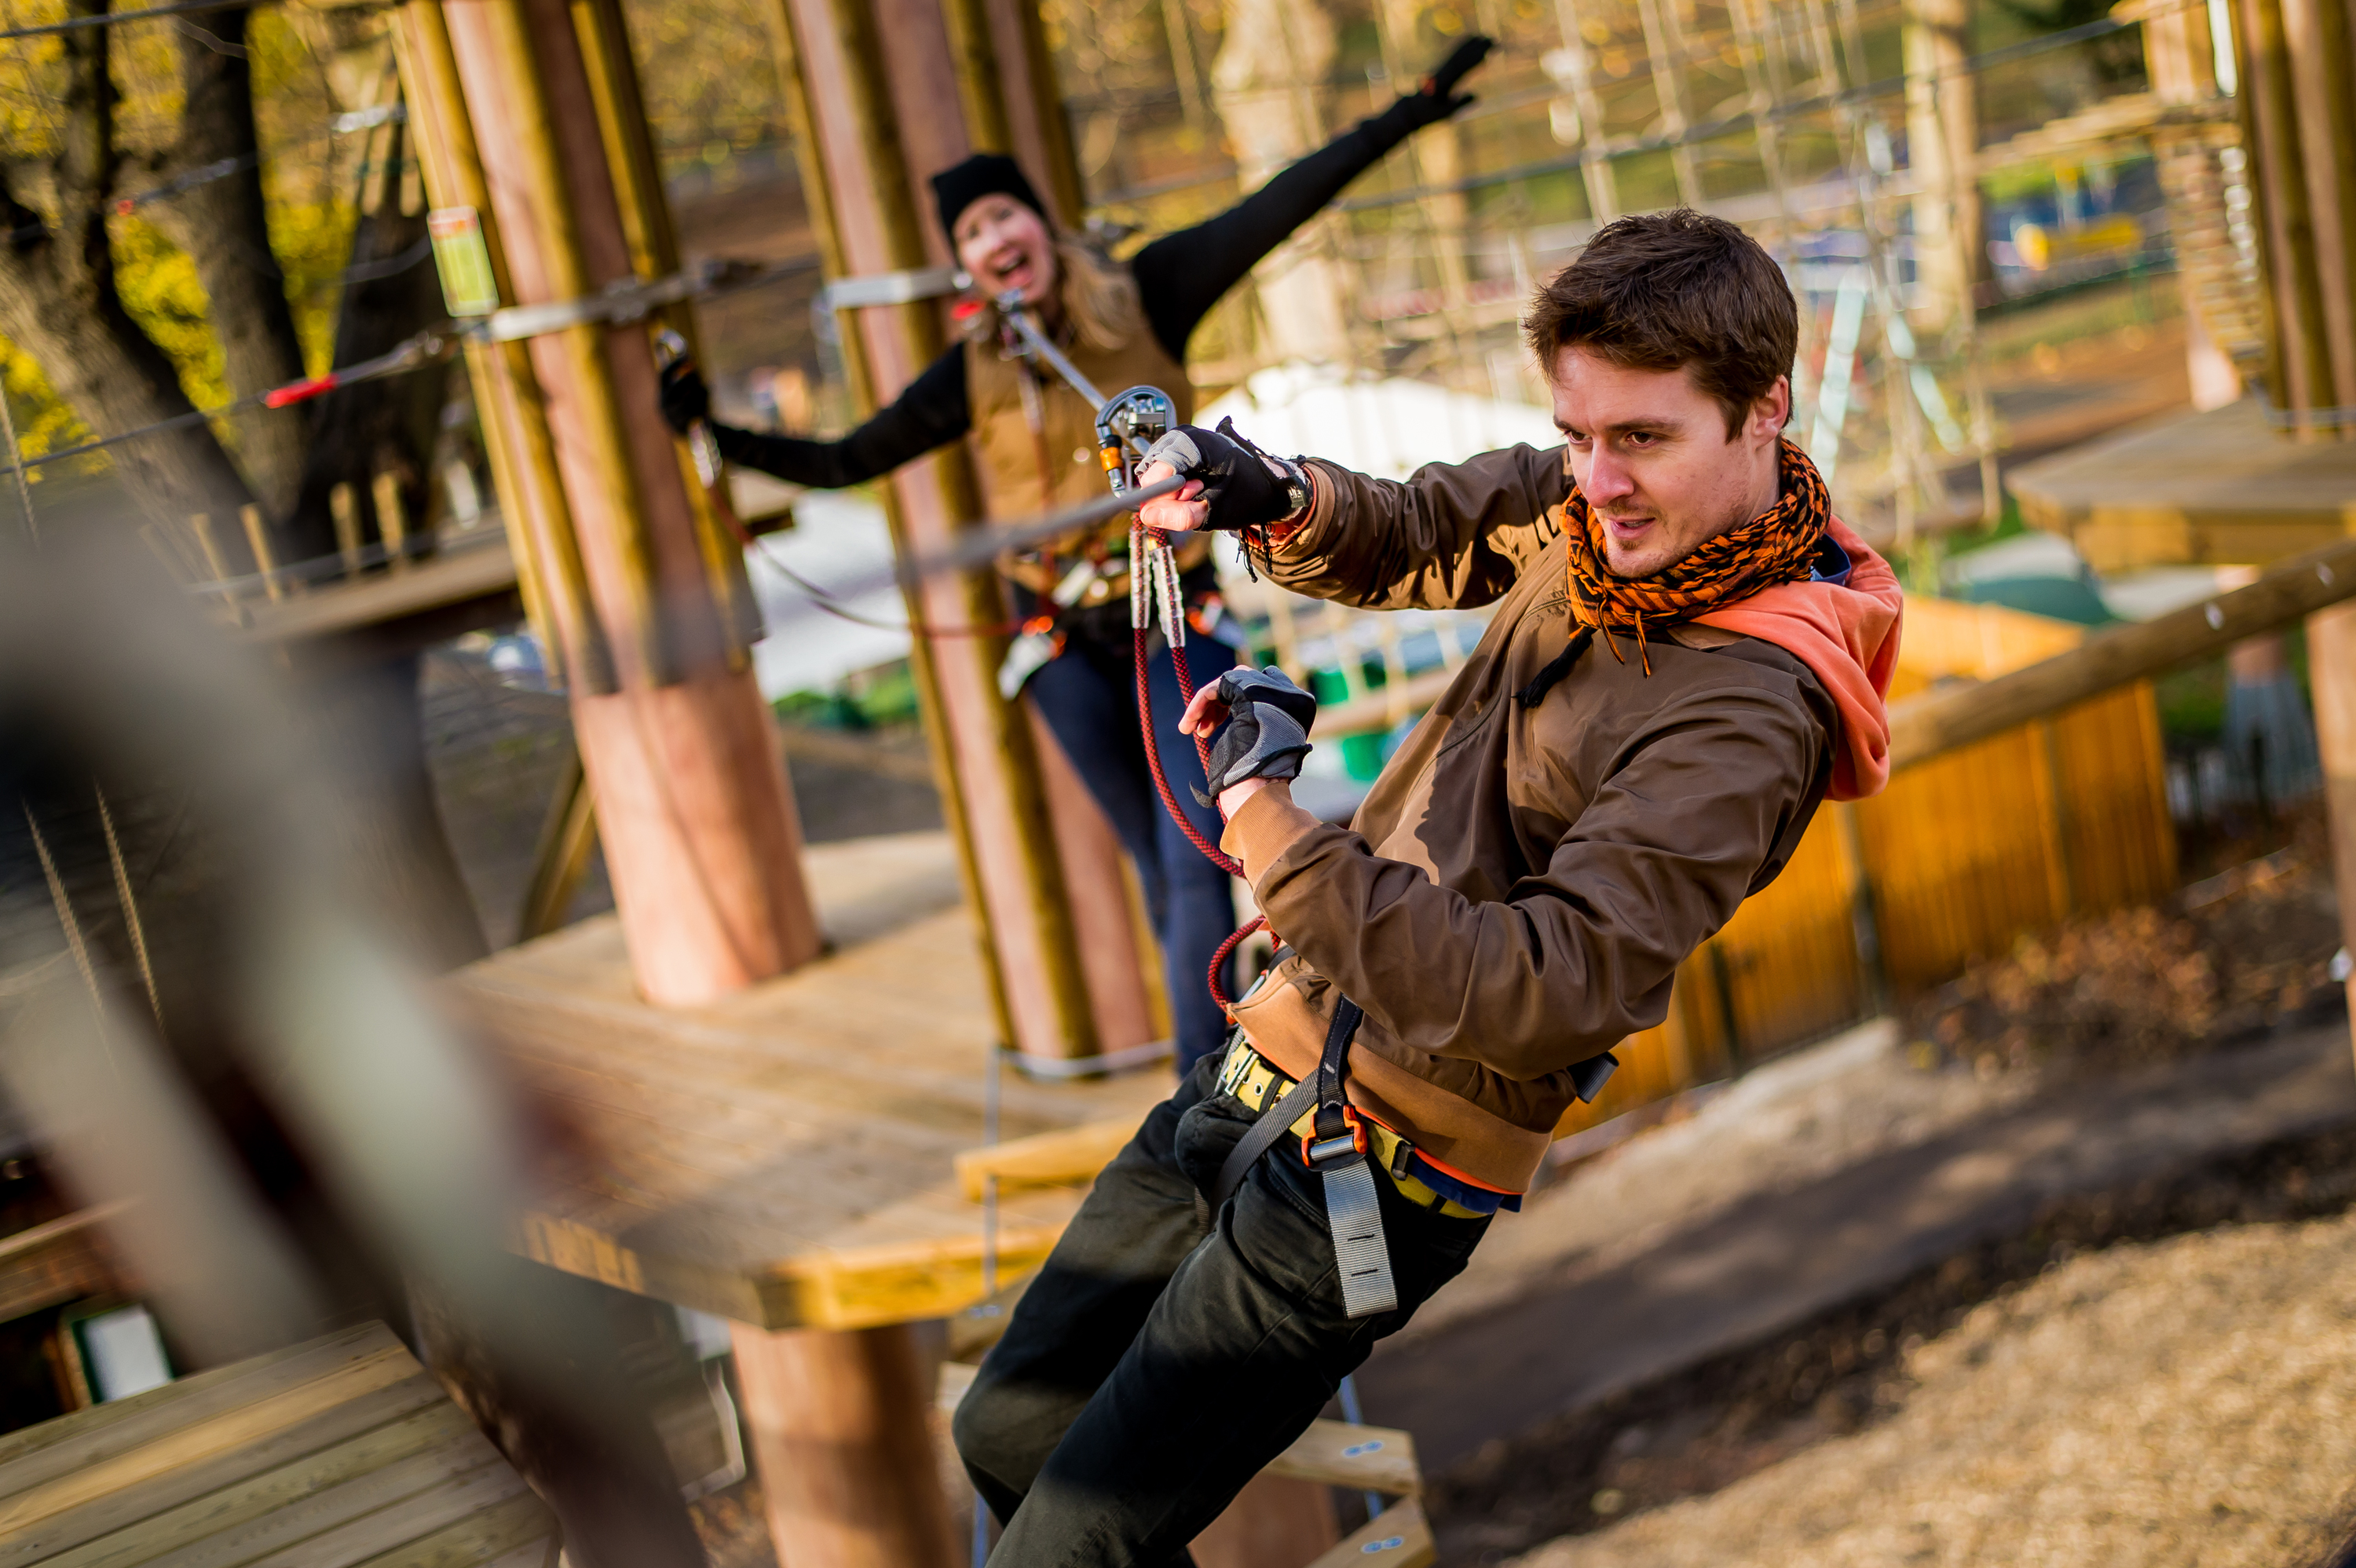 Go Ape at the Go Ape, Battersea Park, London on the 02/12/2015. Photo: David Tett